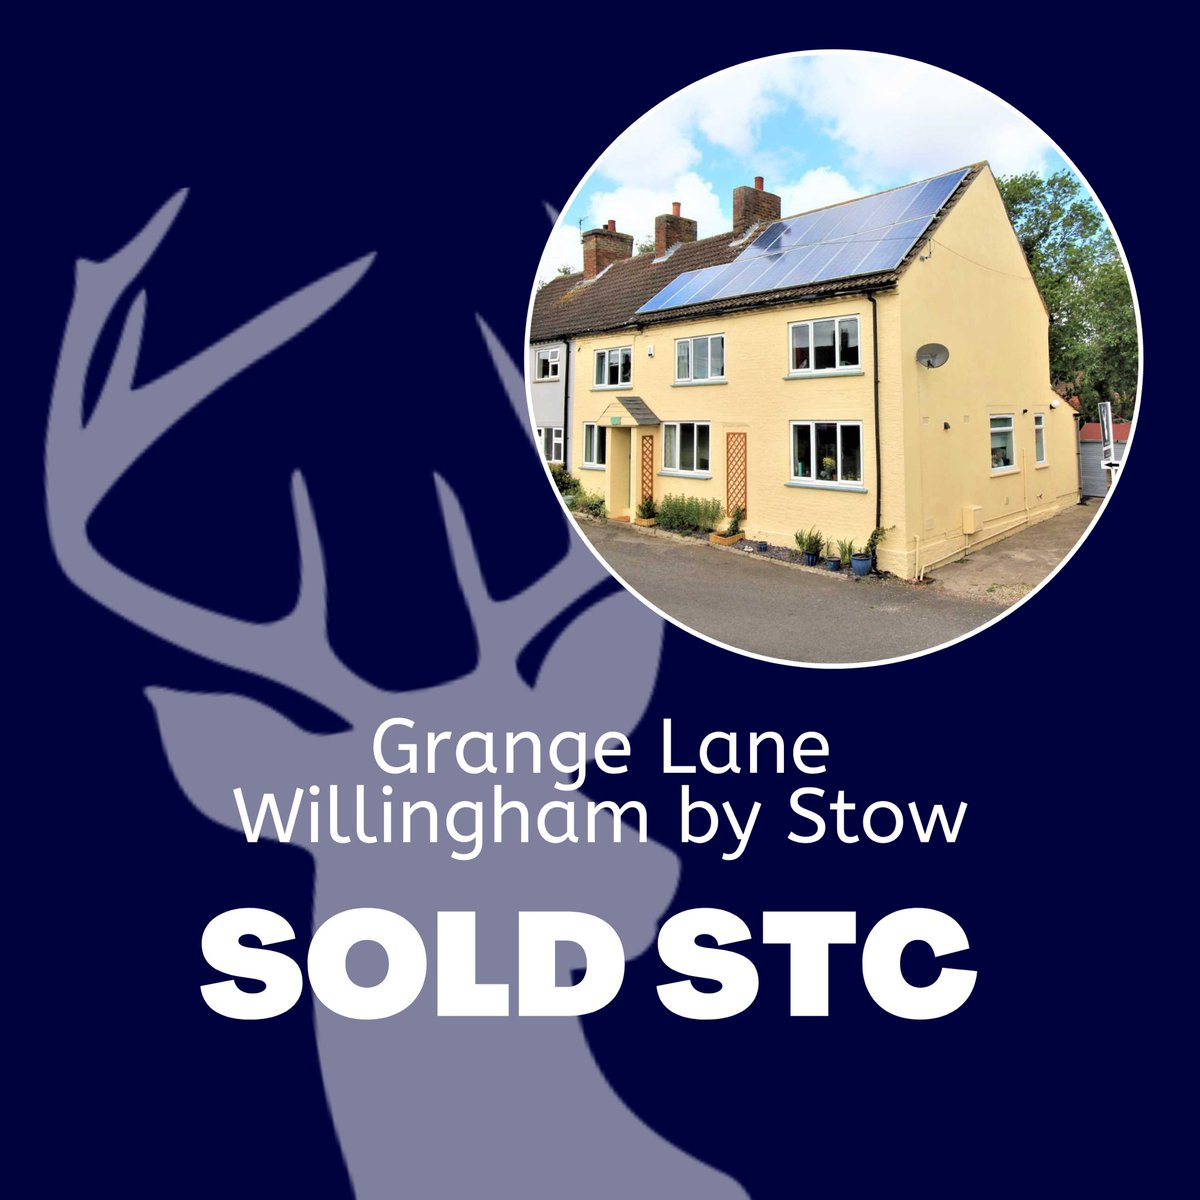 ANOTHER FANTASTIC LISTING SOLD stc  We are delighted for our clients and the buyer. Well done team 👏🏻   Thinking of selling❓We'd love to help.  ☎️ Call 01522 404040  #Sold #Result #EstateAgent #WillinghamByStow #lincoln #Property #RealEstate #TaylorWalshPropertyConsultants https://t.co/psfSJR5viX